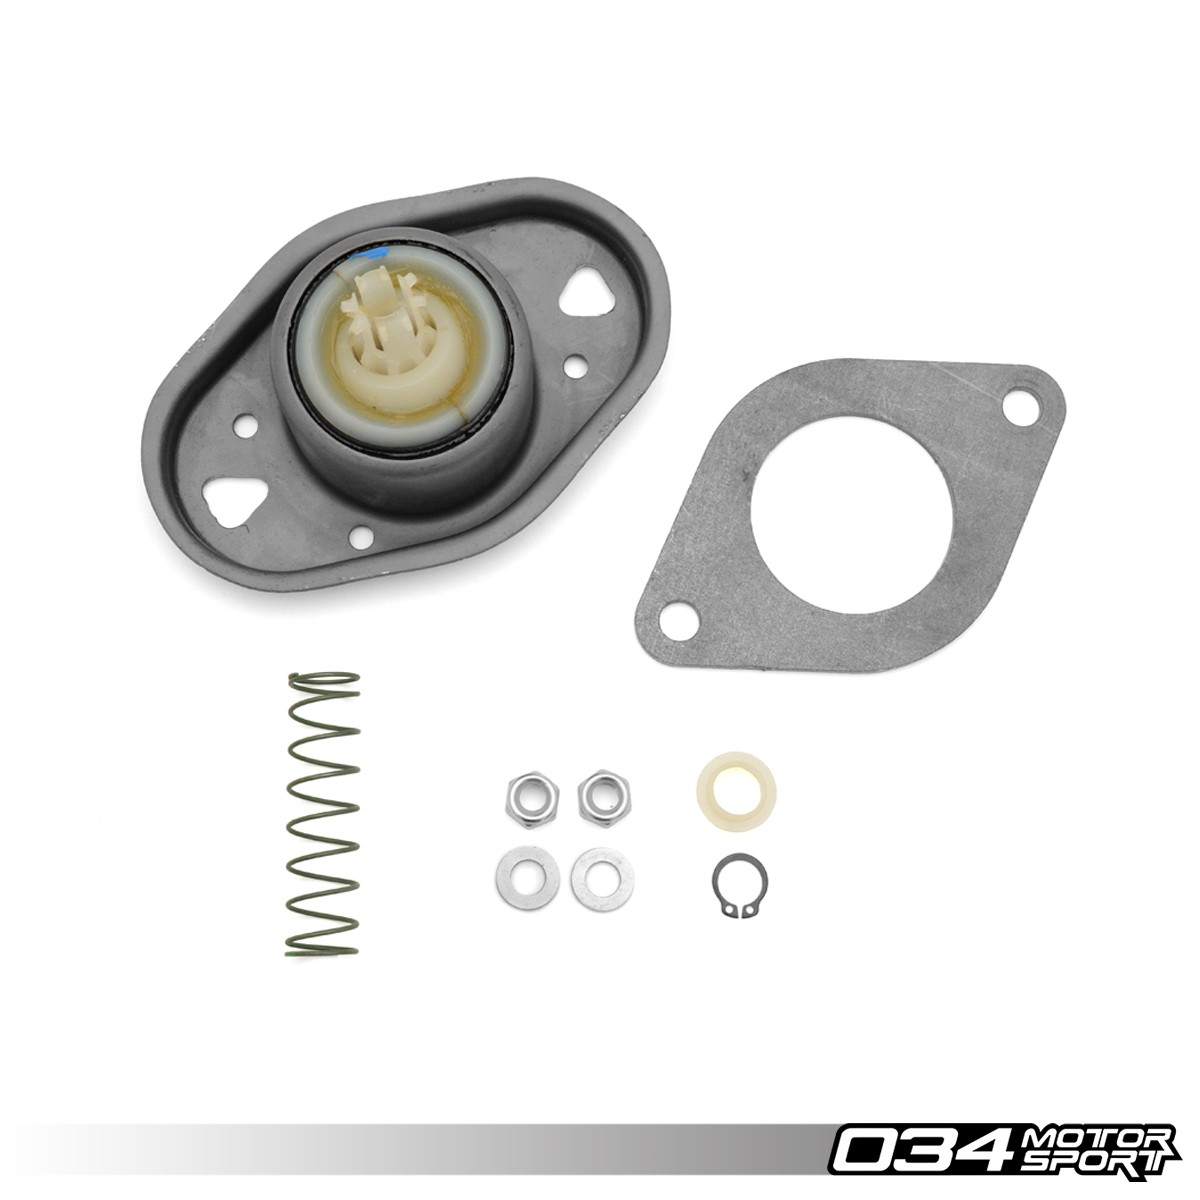 01A Short Shift Kit, B3/B4 Chassis Audi 80/90 & Coupe Quattro | 034-508-0001